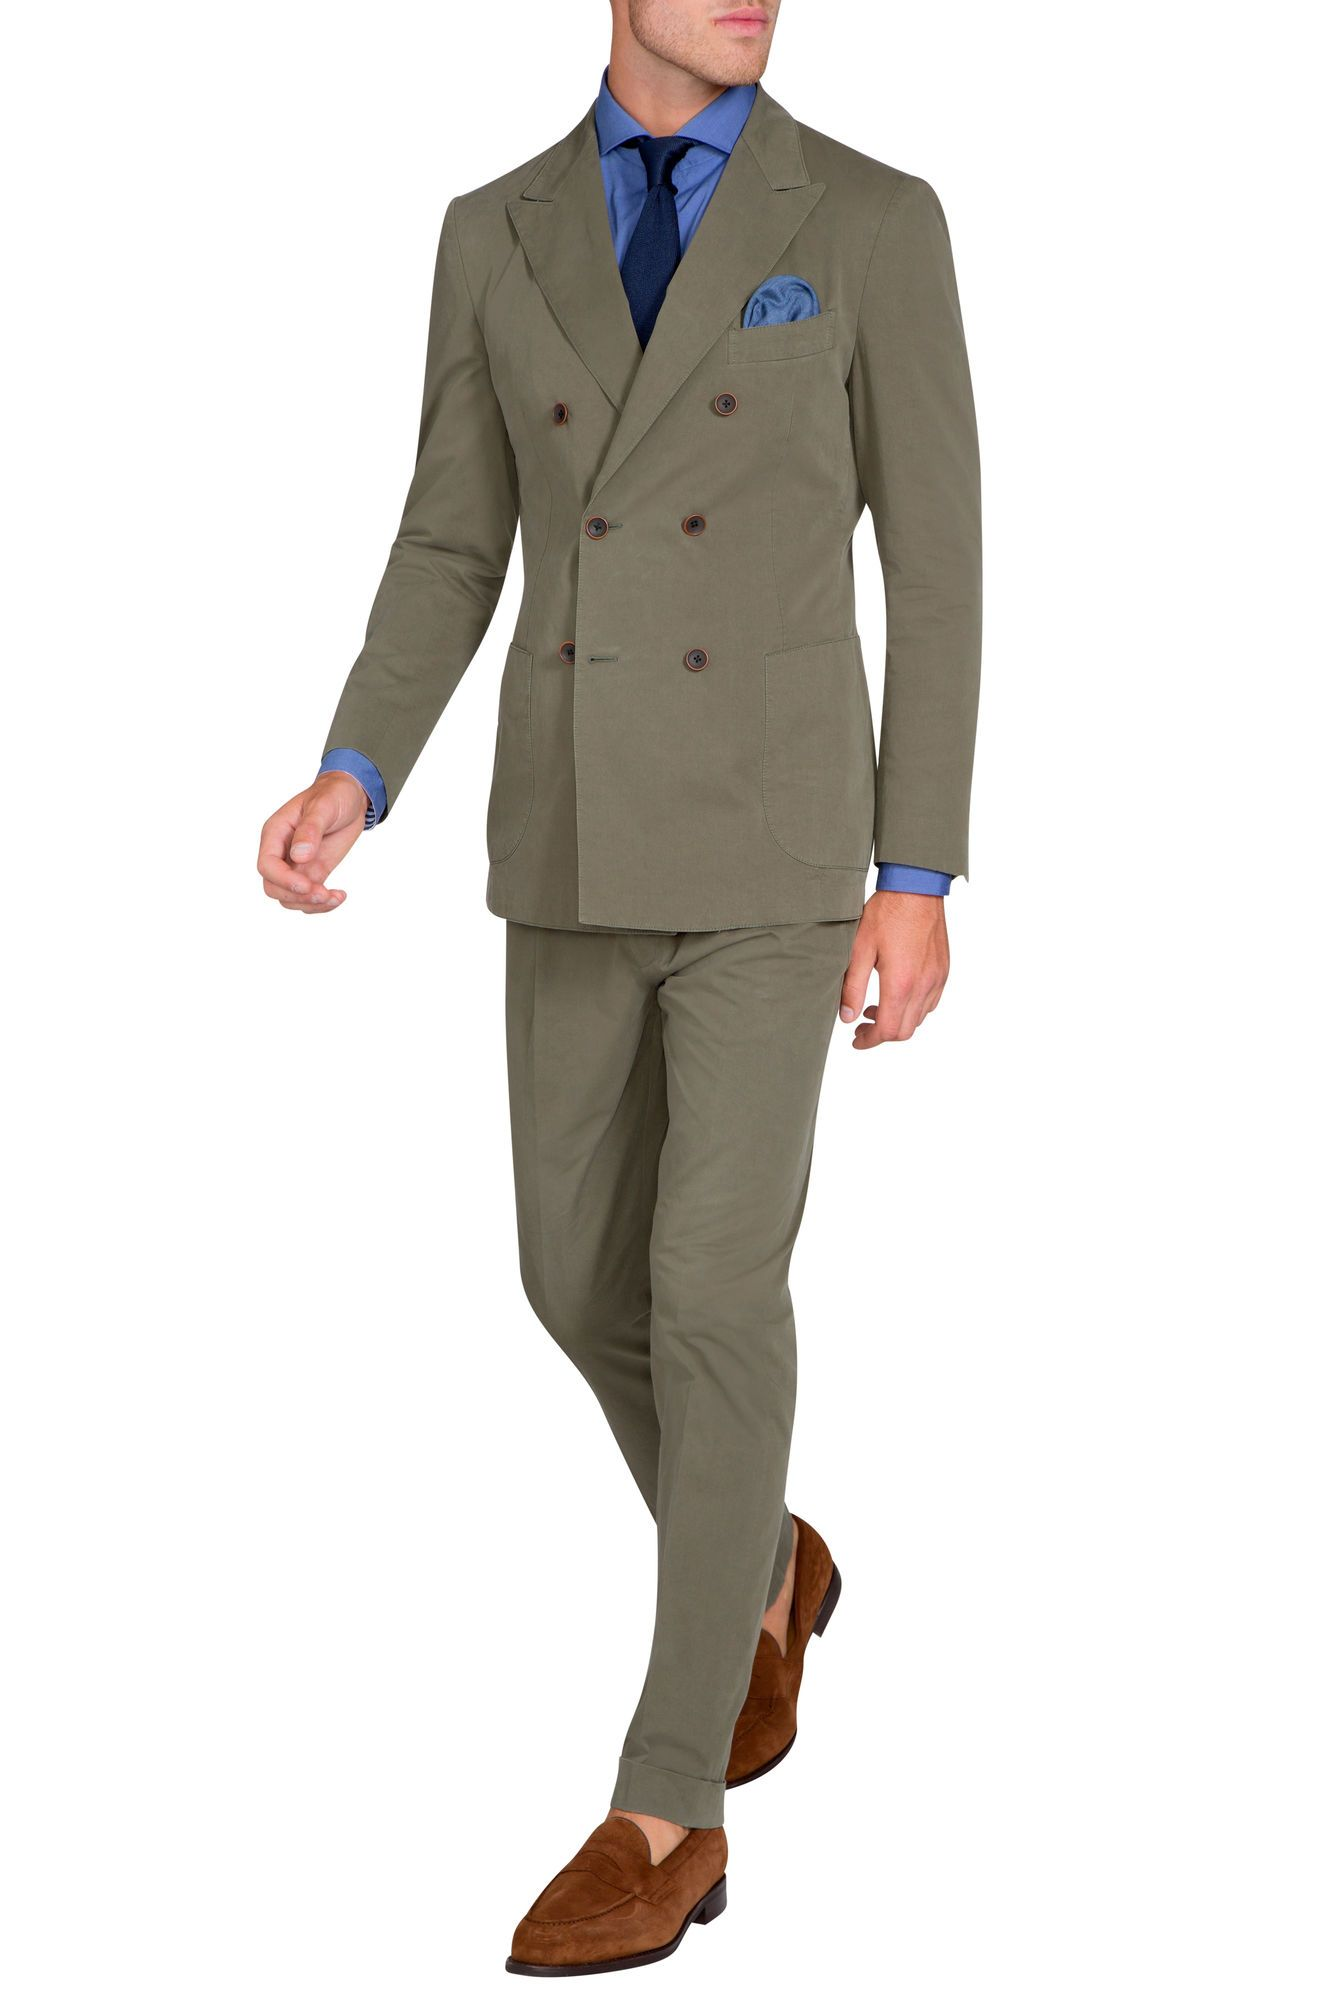 Demaret Khaki Trouser | Suit Separates | looks to recreate ...